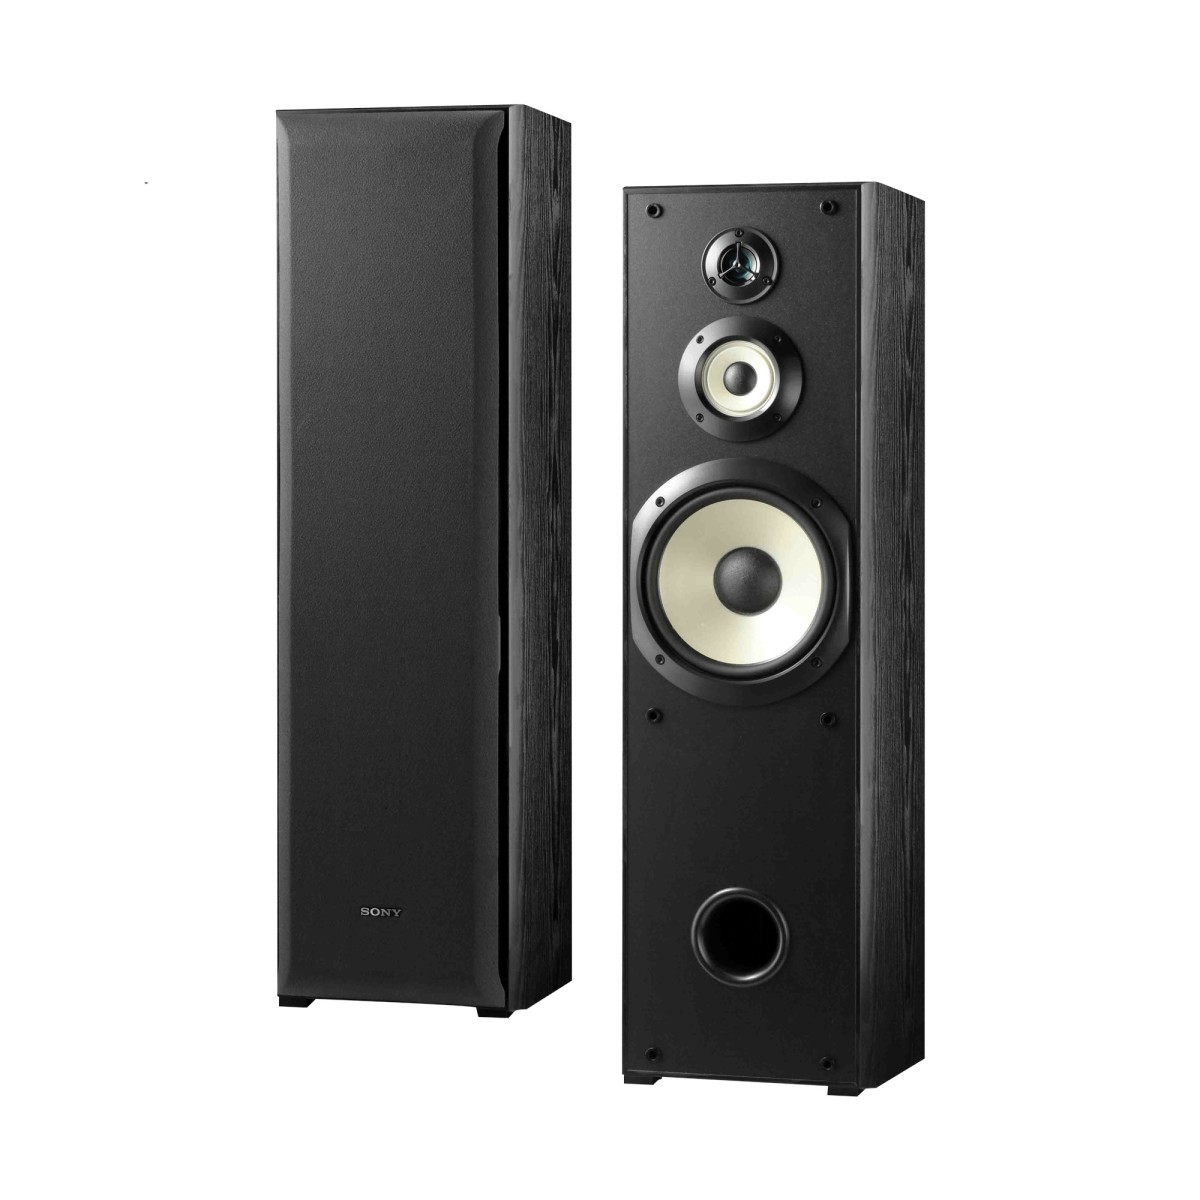 Sony SS-F5000 speakers